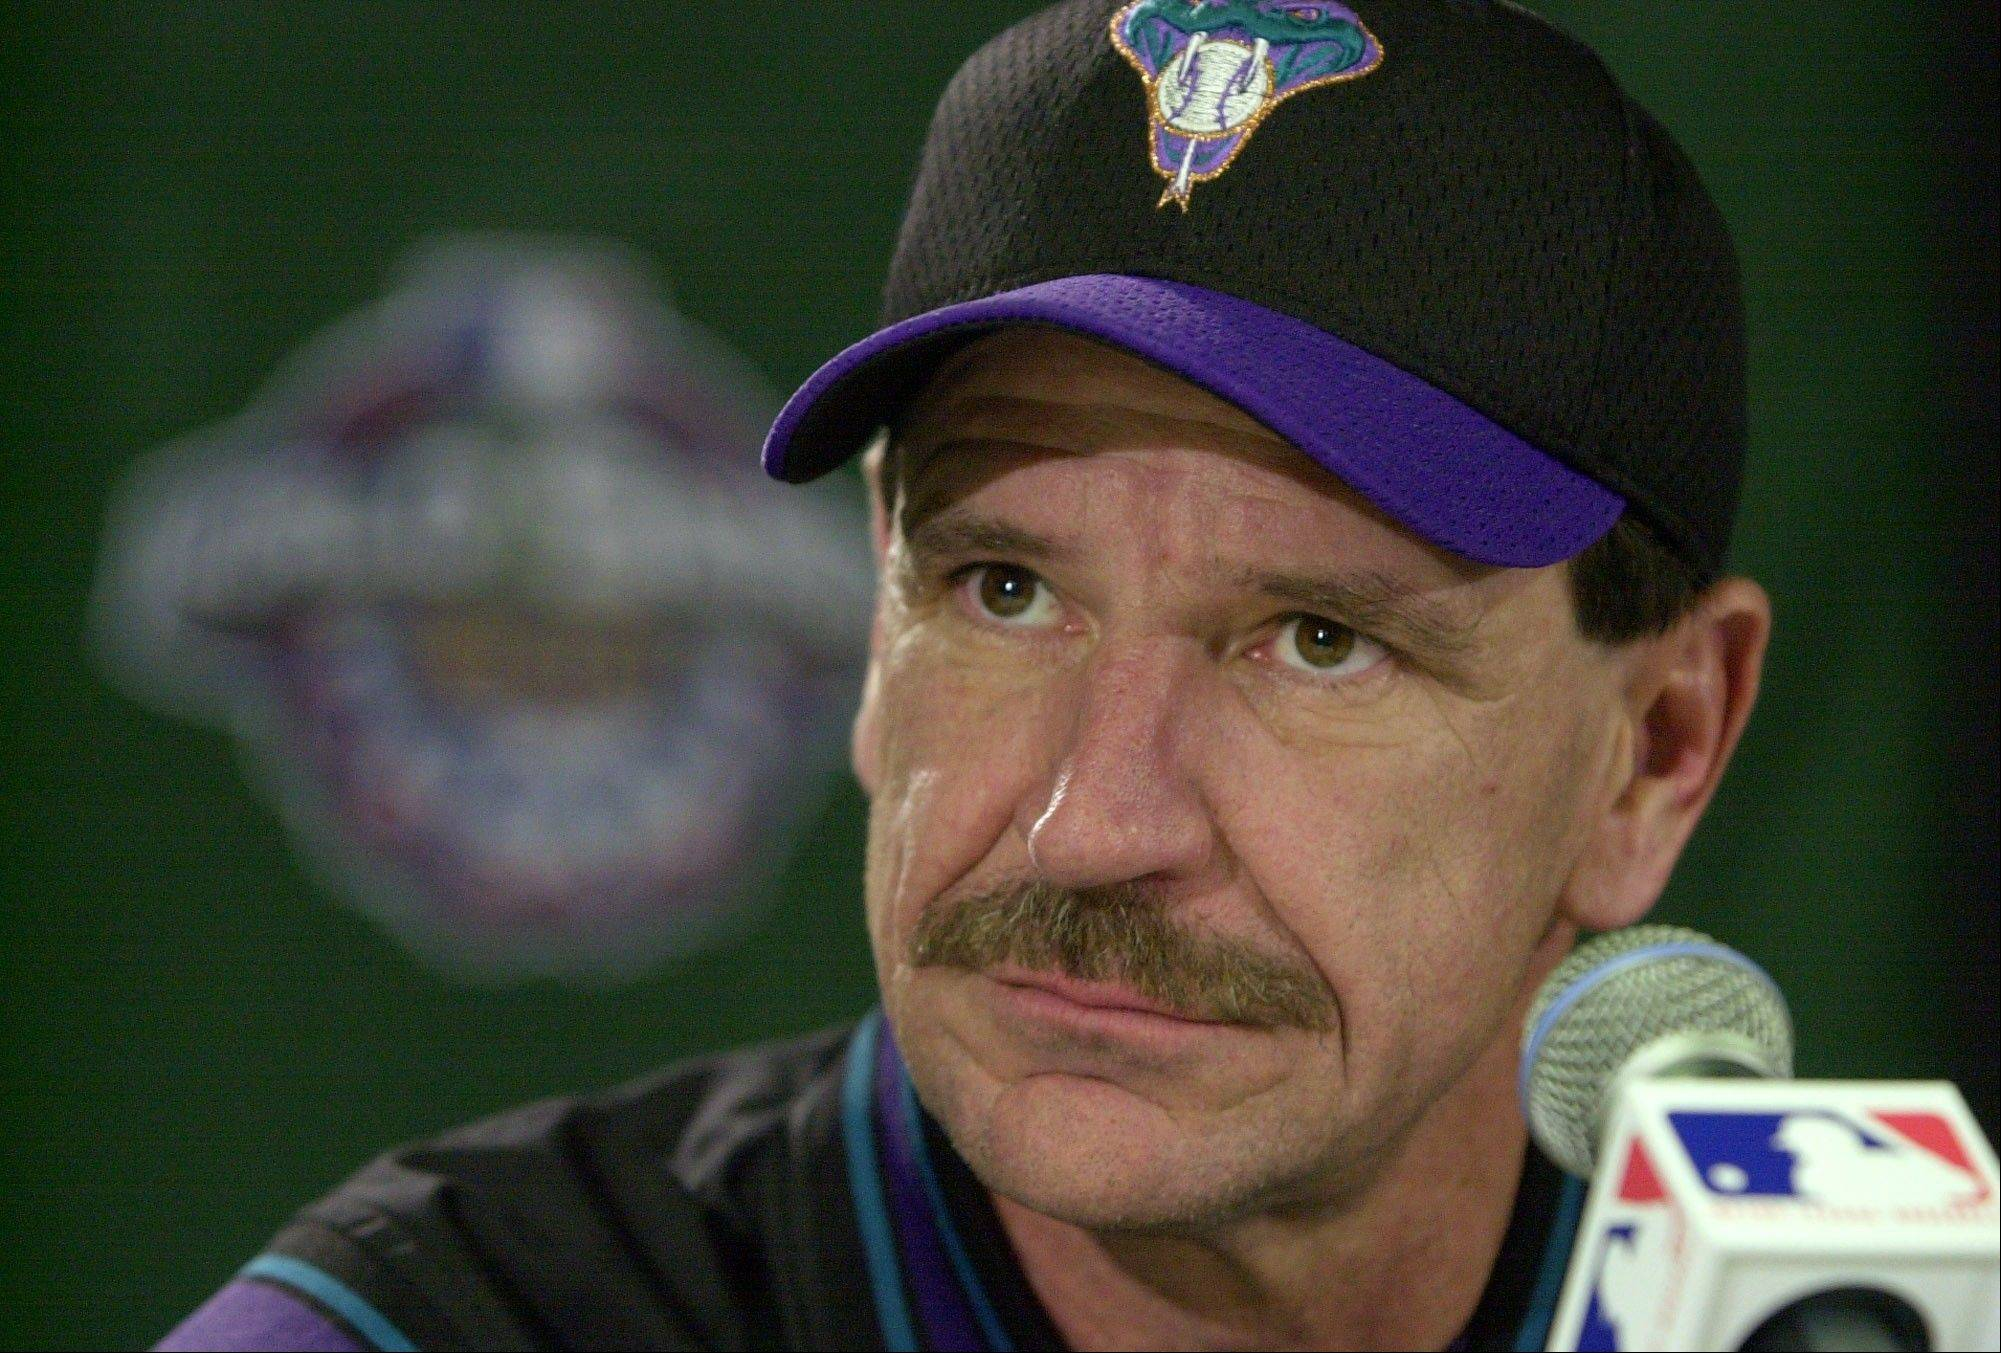 Ten years ago, Bob Brenly was the manager of the Arizona Diamondbacks when they played the New York Yankees in the World Series after the Sept. 11 attacks. A sense of pride overwhelmed him, Brenly said, when President George W. Bush threw out the first pitch for Game 3 at Yankee Stadium.